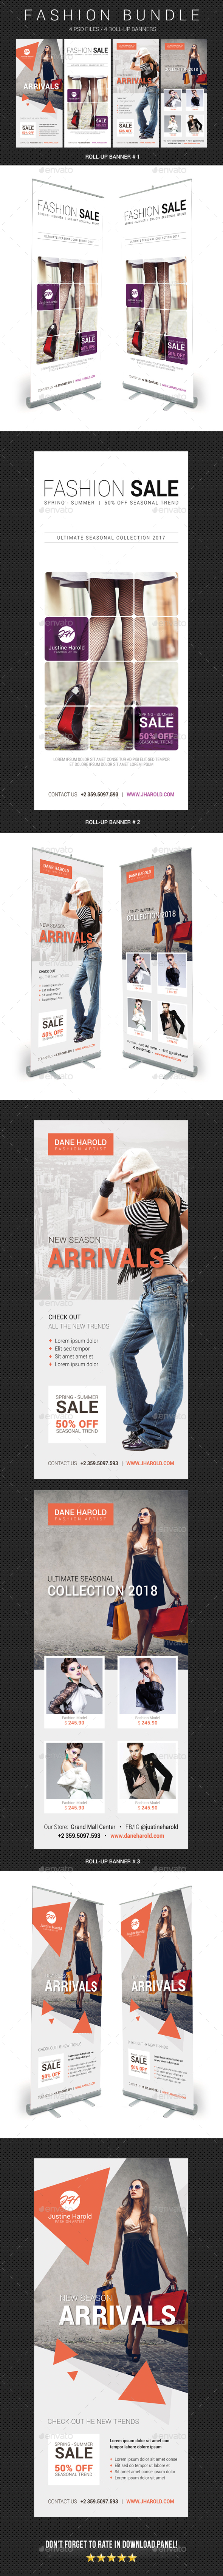 Fashion Banner Templates - Signage Print Templates